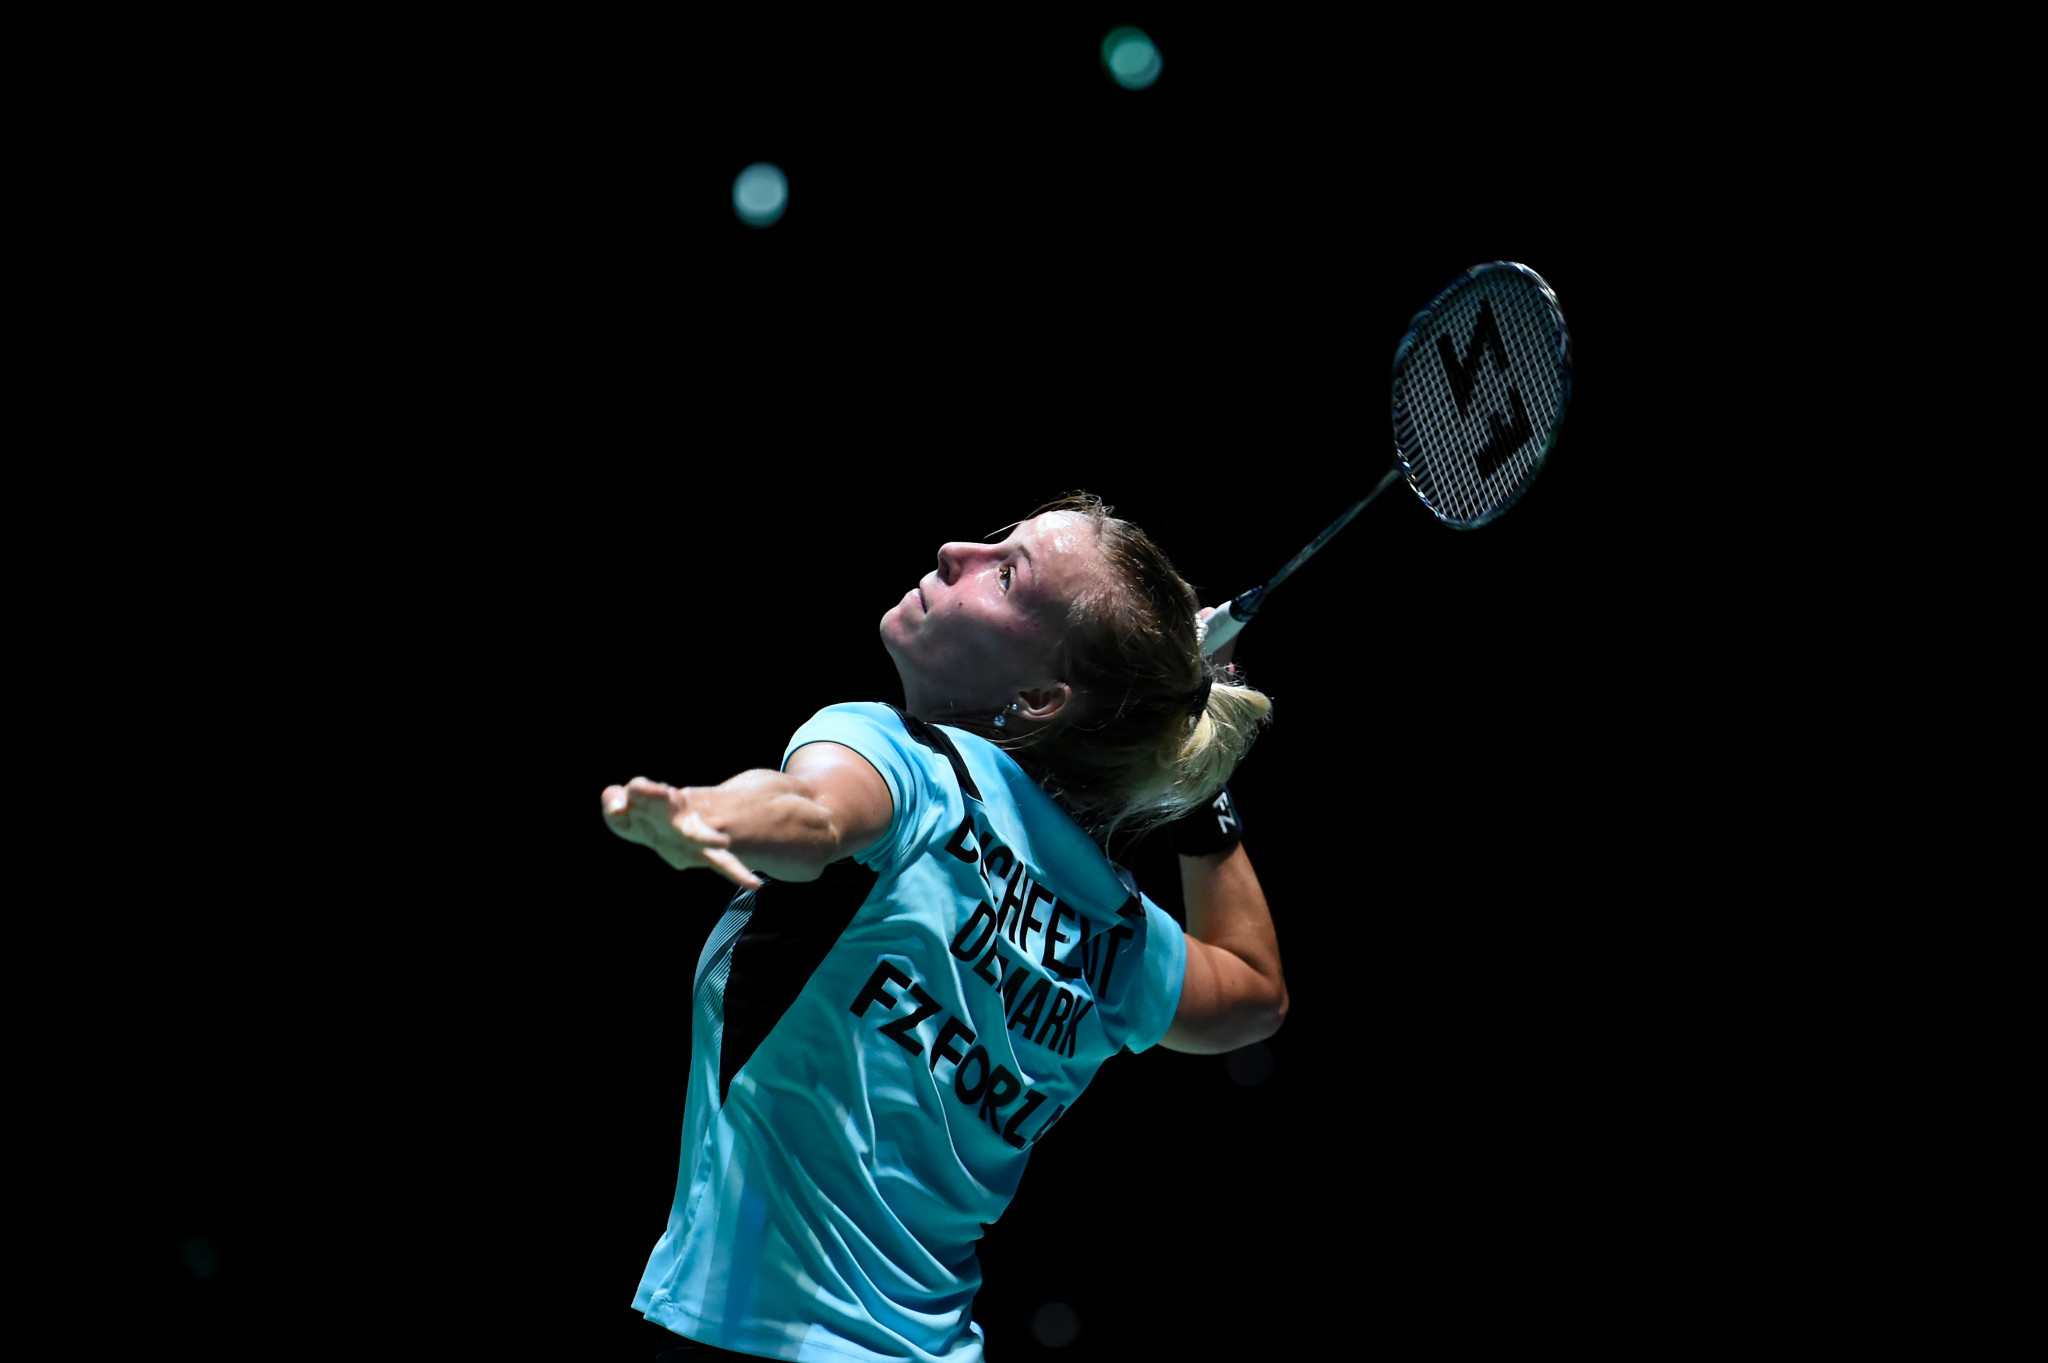 Mia Blichfeldt overcame loss in game one to put Danes on track for semifinals © Getty Images